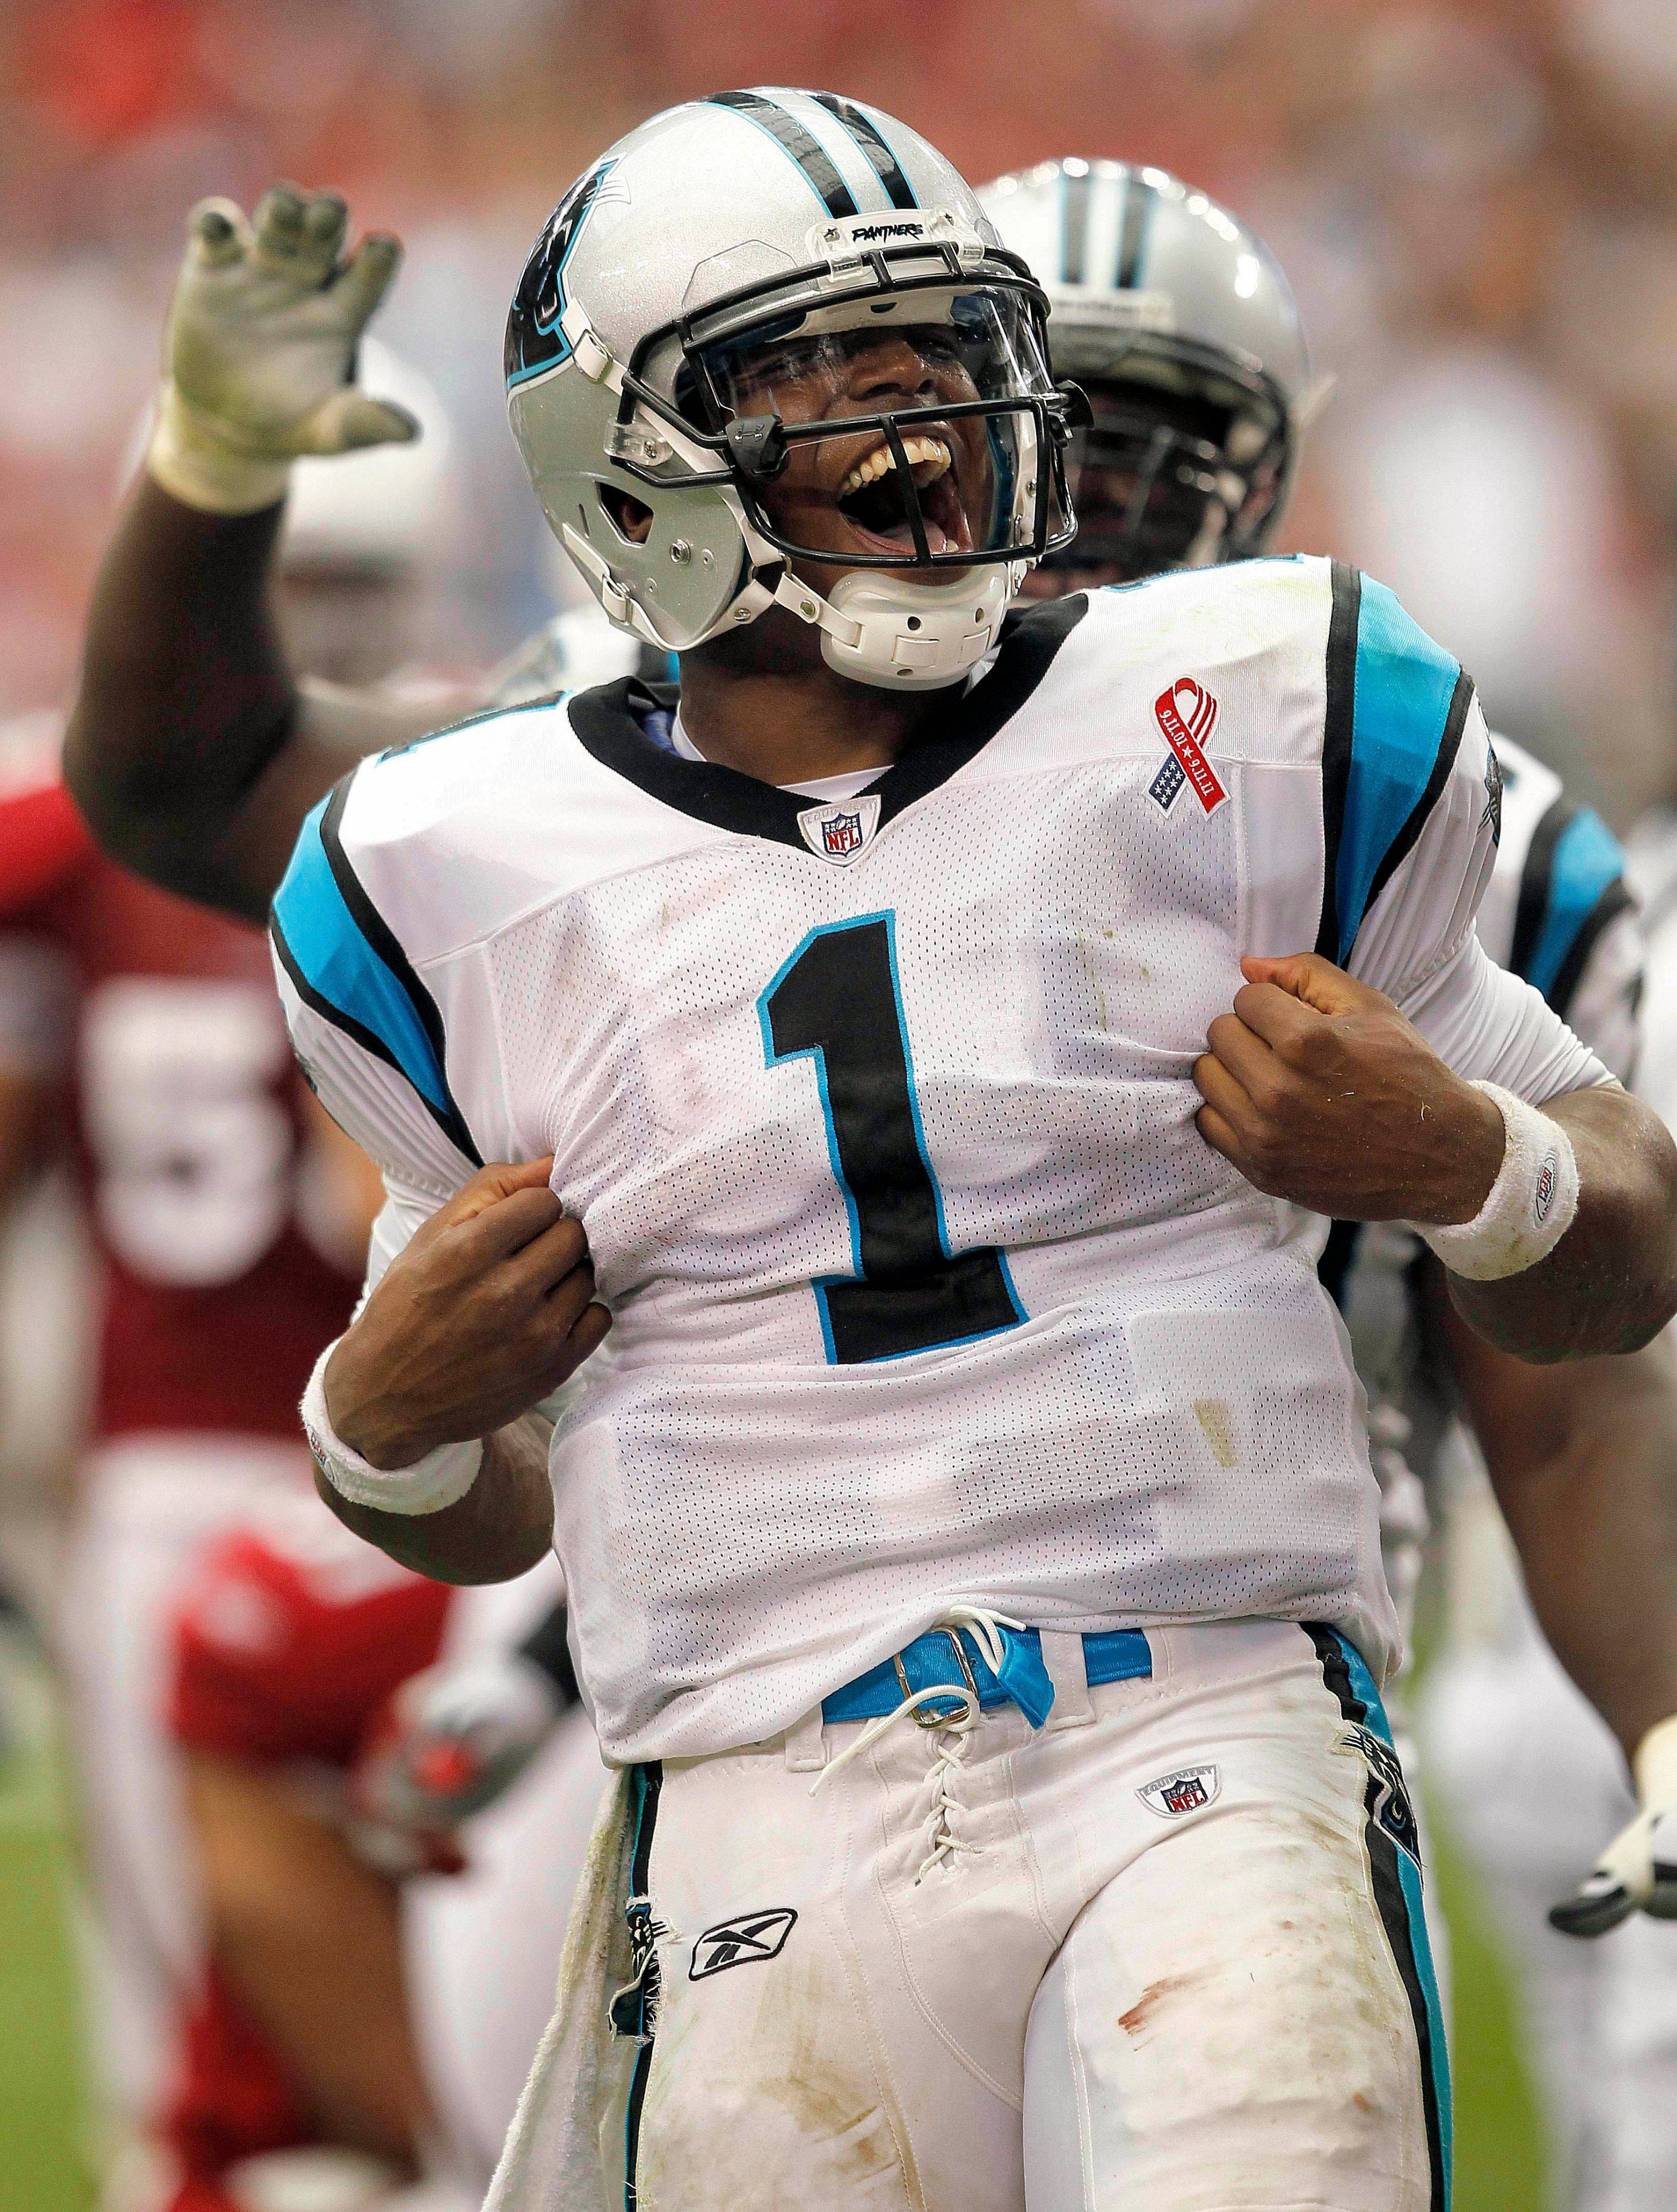 Carolina Panthers quarterback Cam Newton was one of several rookies who were impressive during week 1 of the NFL season.